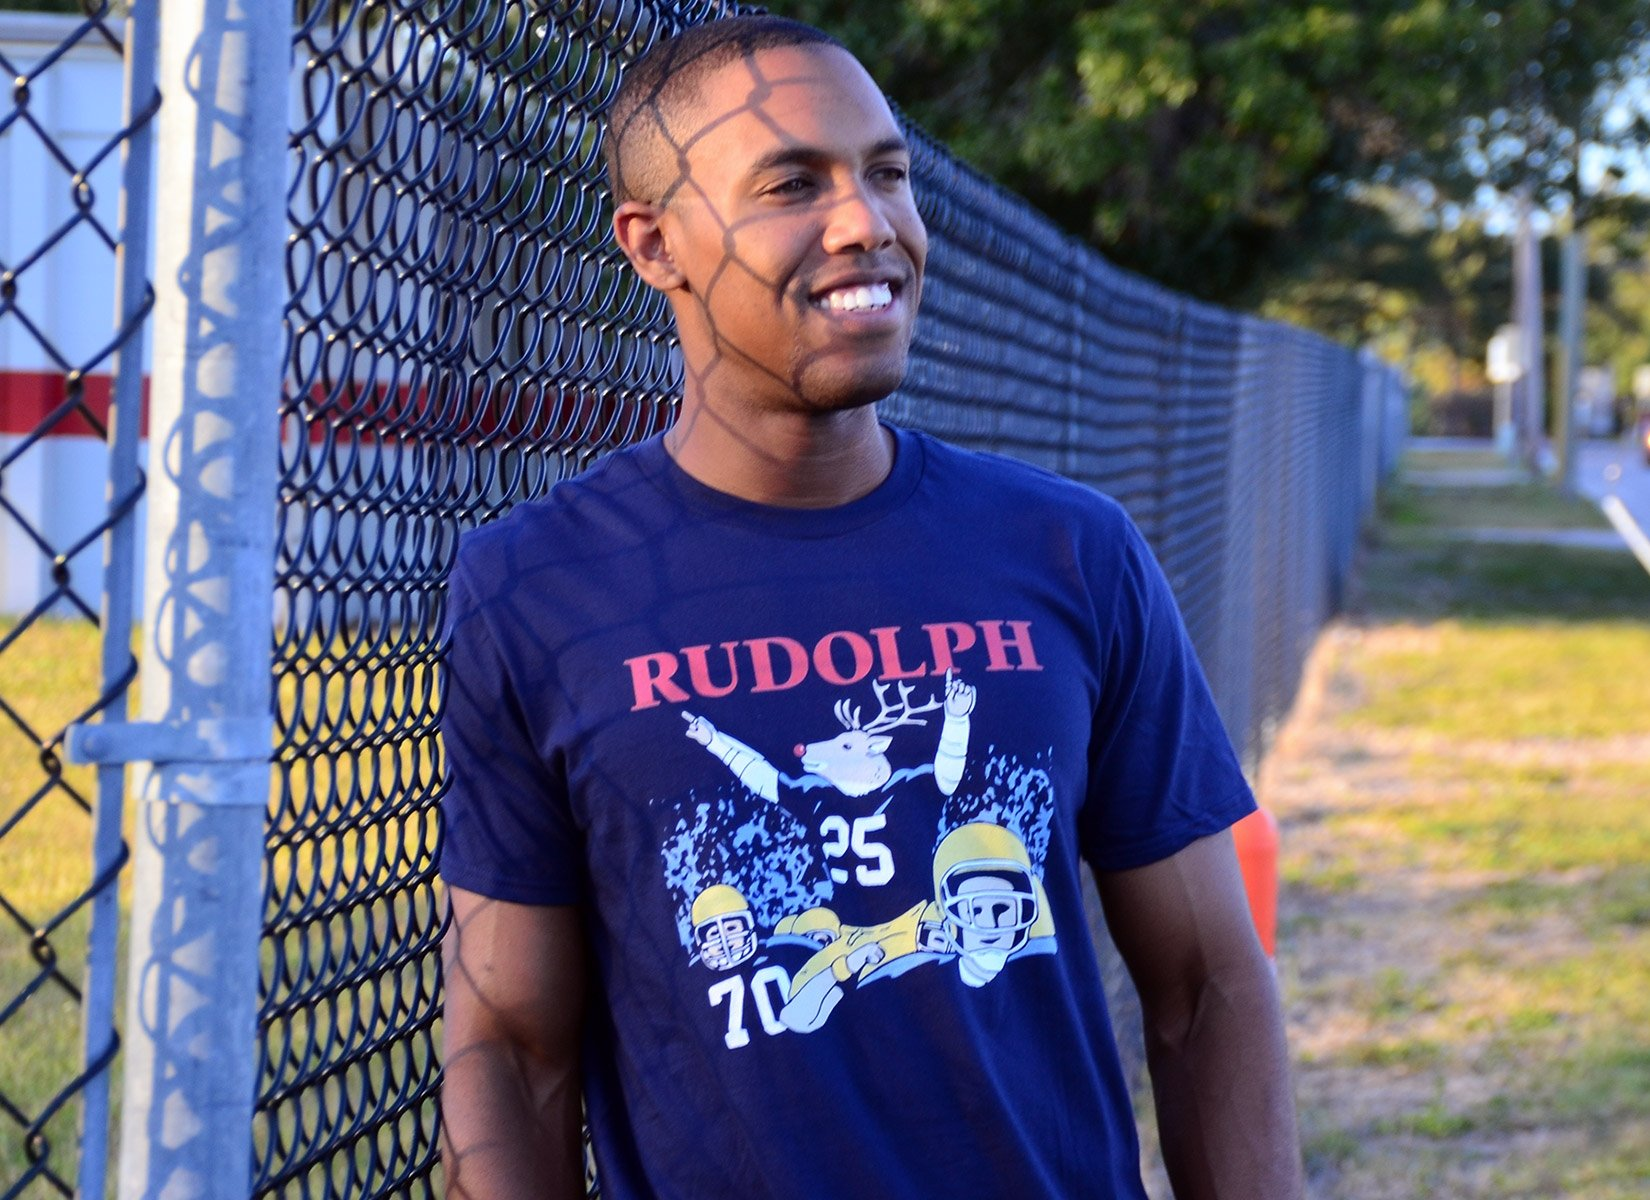 Rudolph on Mens T-Shirt